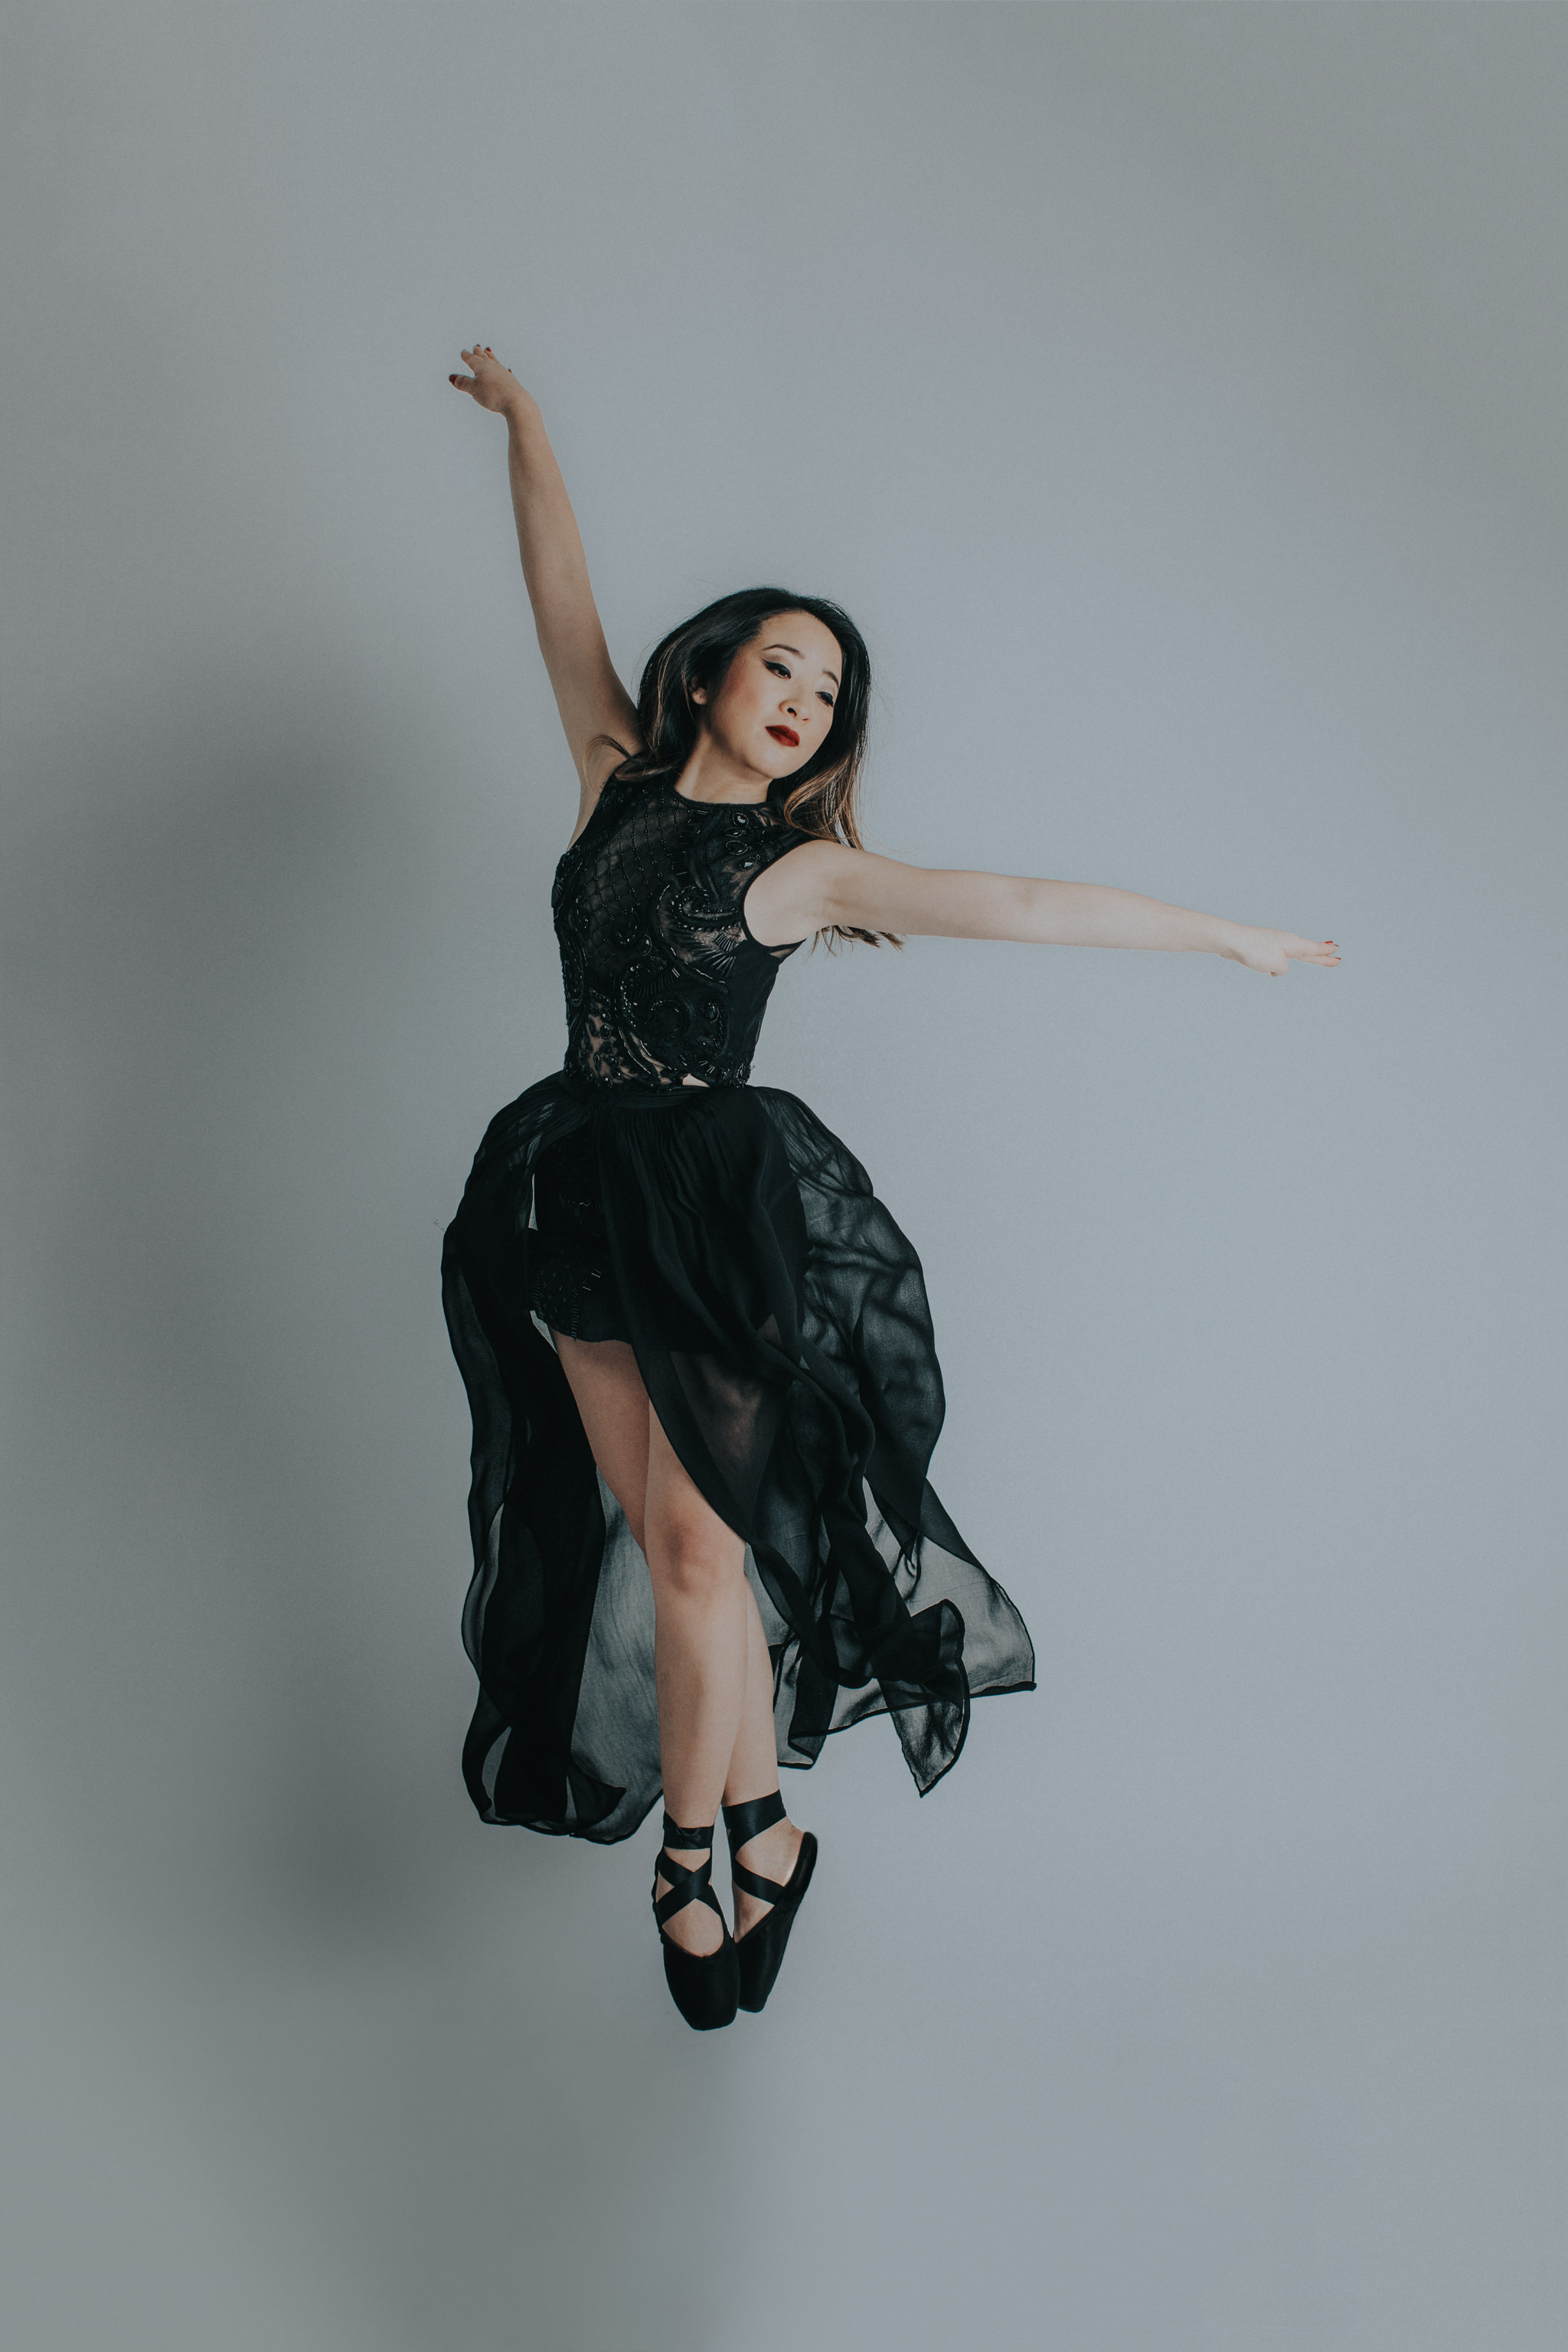 dance photography in melbourne - dance studio shots for professional dancers